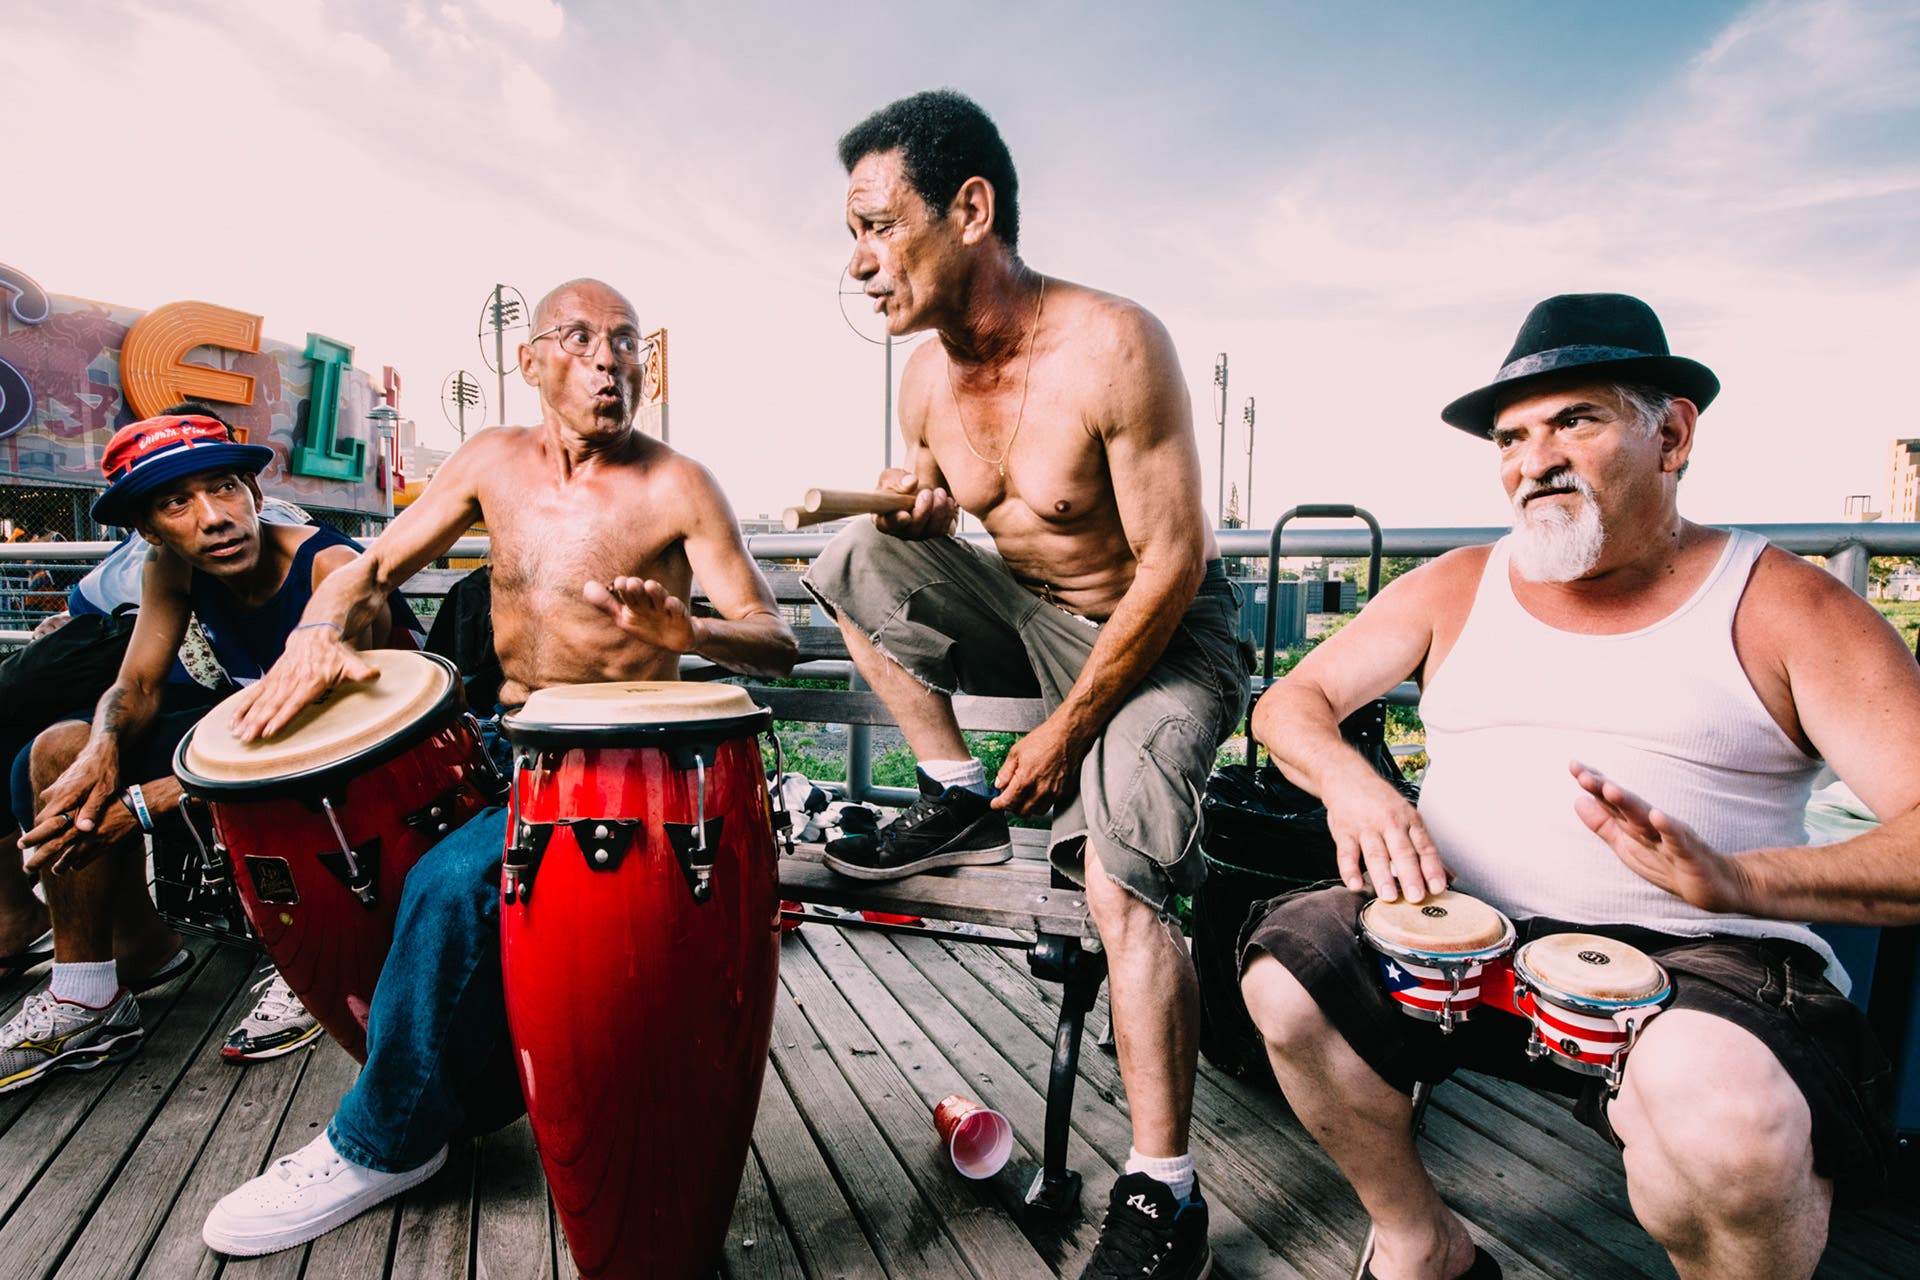 Dimitri Mais' Portraits of Strangers Show Vibrant Life on Coney Island Boardwalk